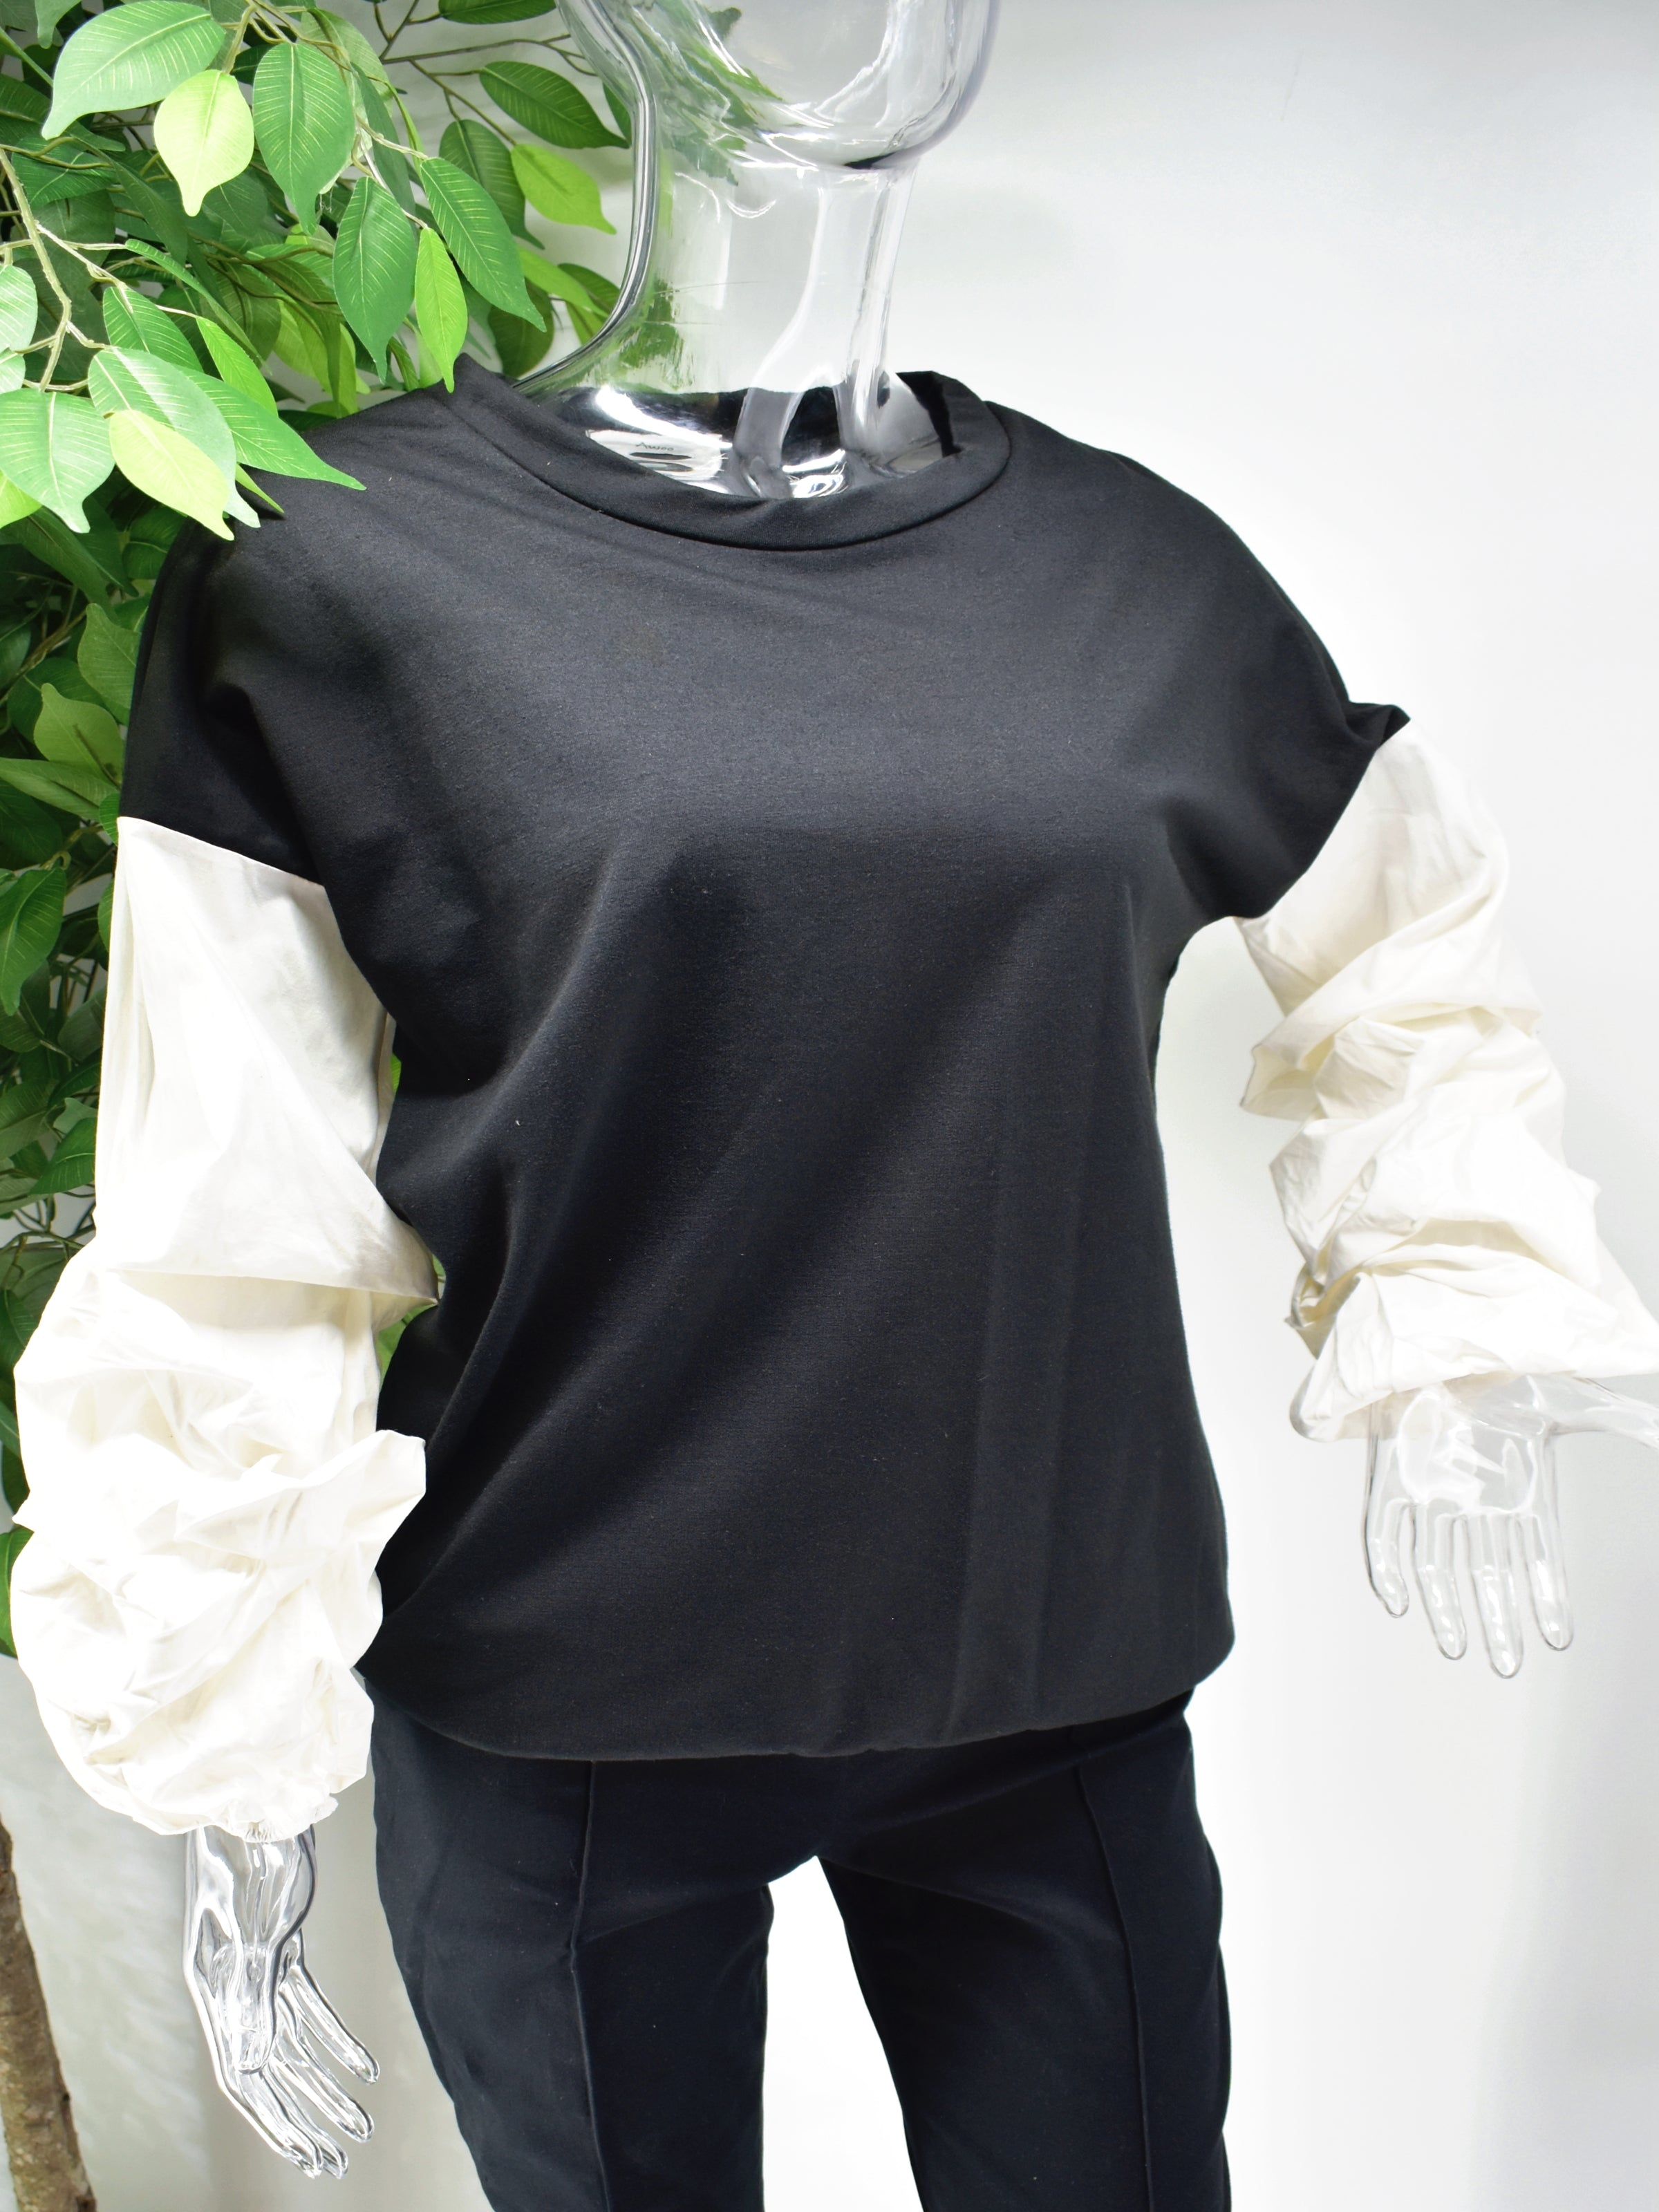 Let's Reinvent the sweater with our Bianey Black sweater top.  Our Bianey top is a black sweater top with a white puffed rouged sleeve.